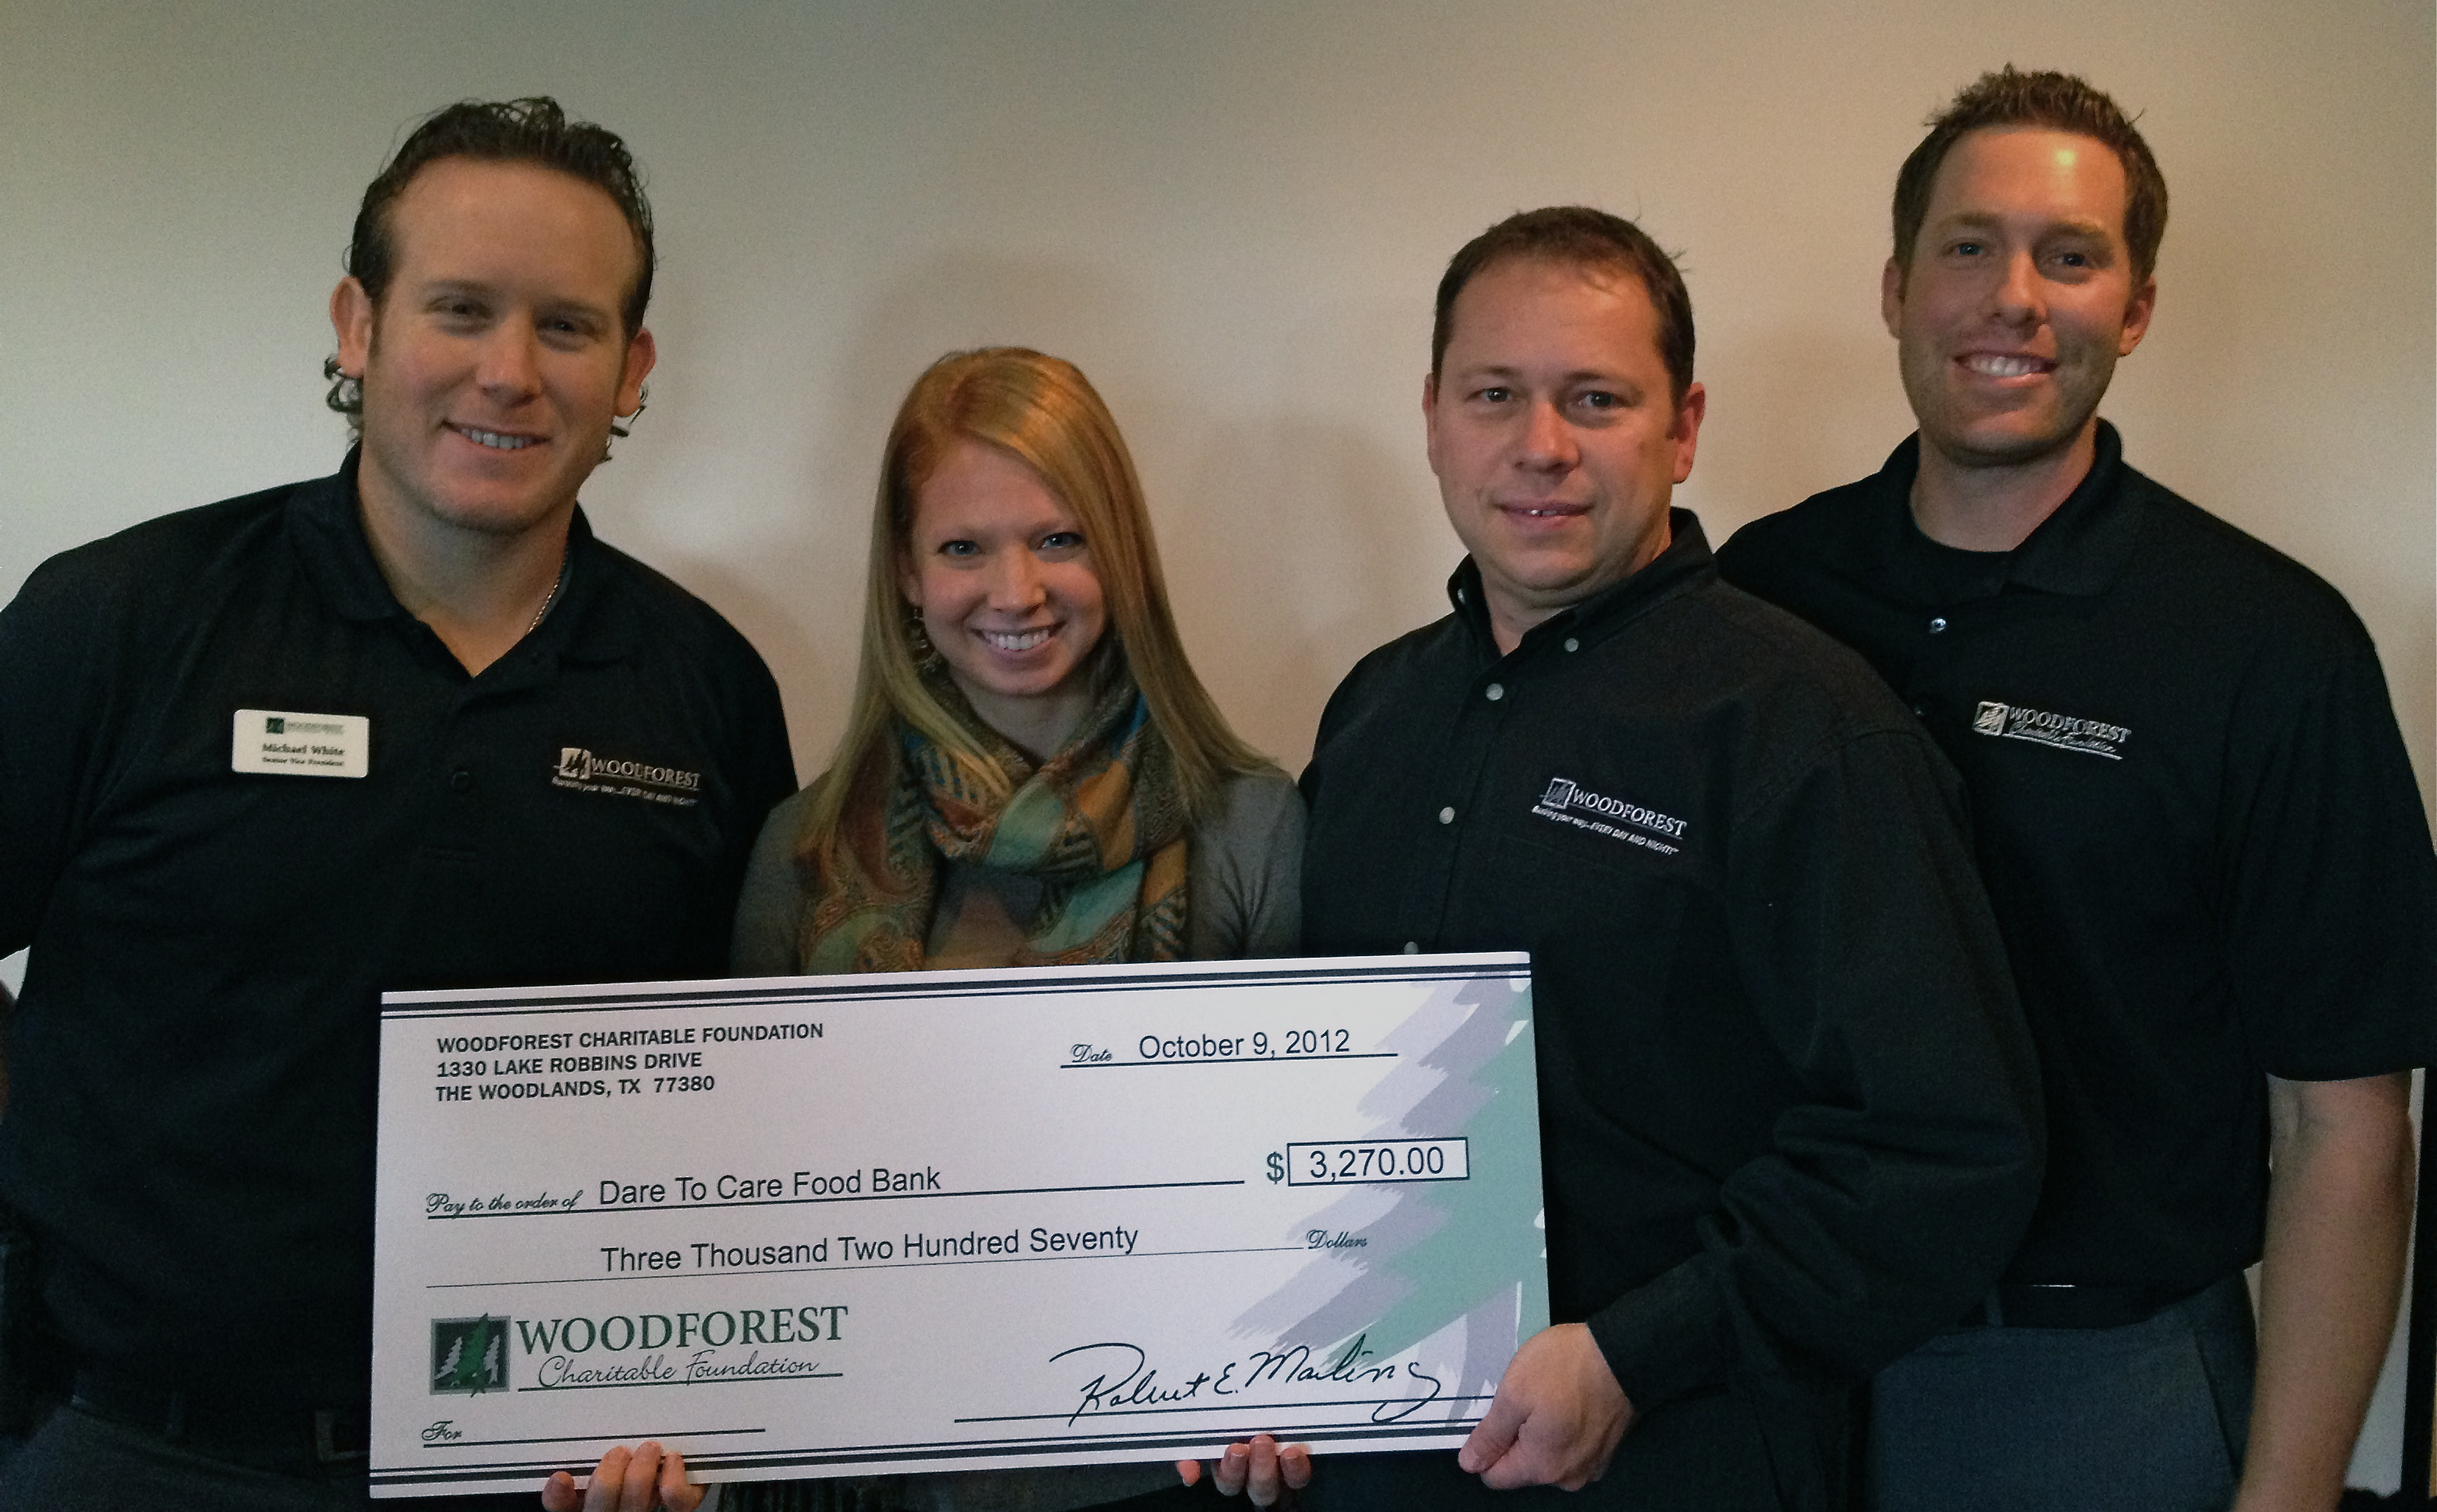 Dare to Care Food Bank receives $420 donation from Woodforest Charitable Foundation.